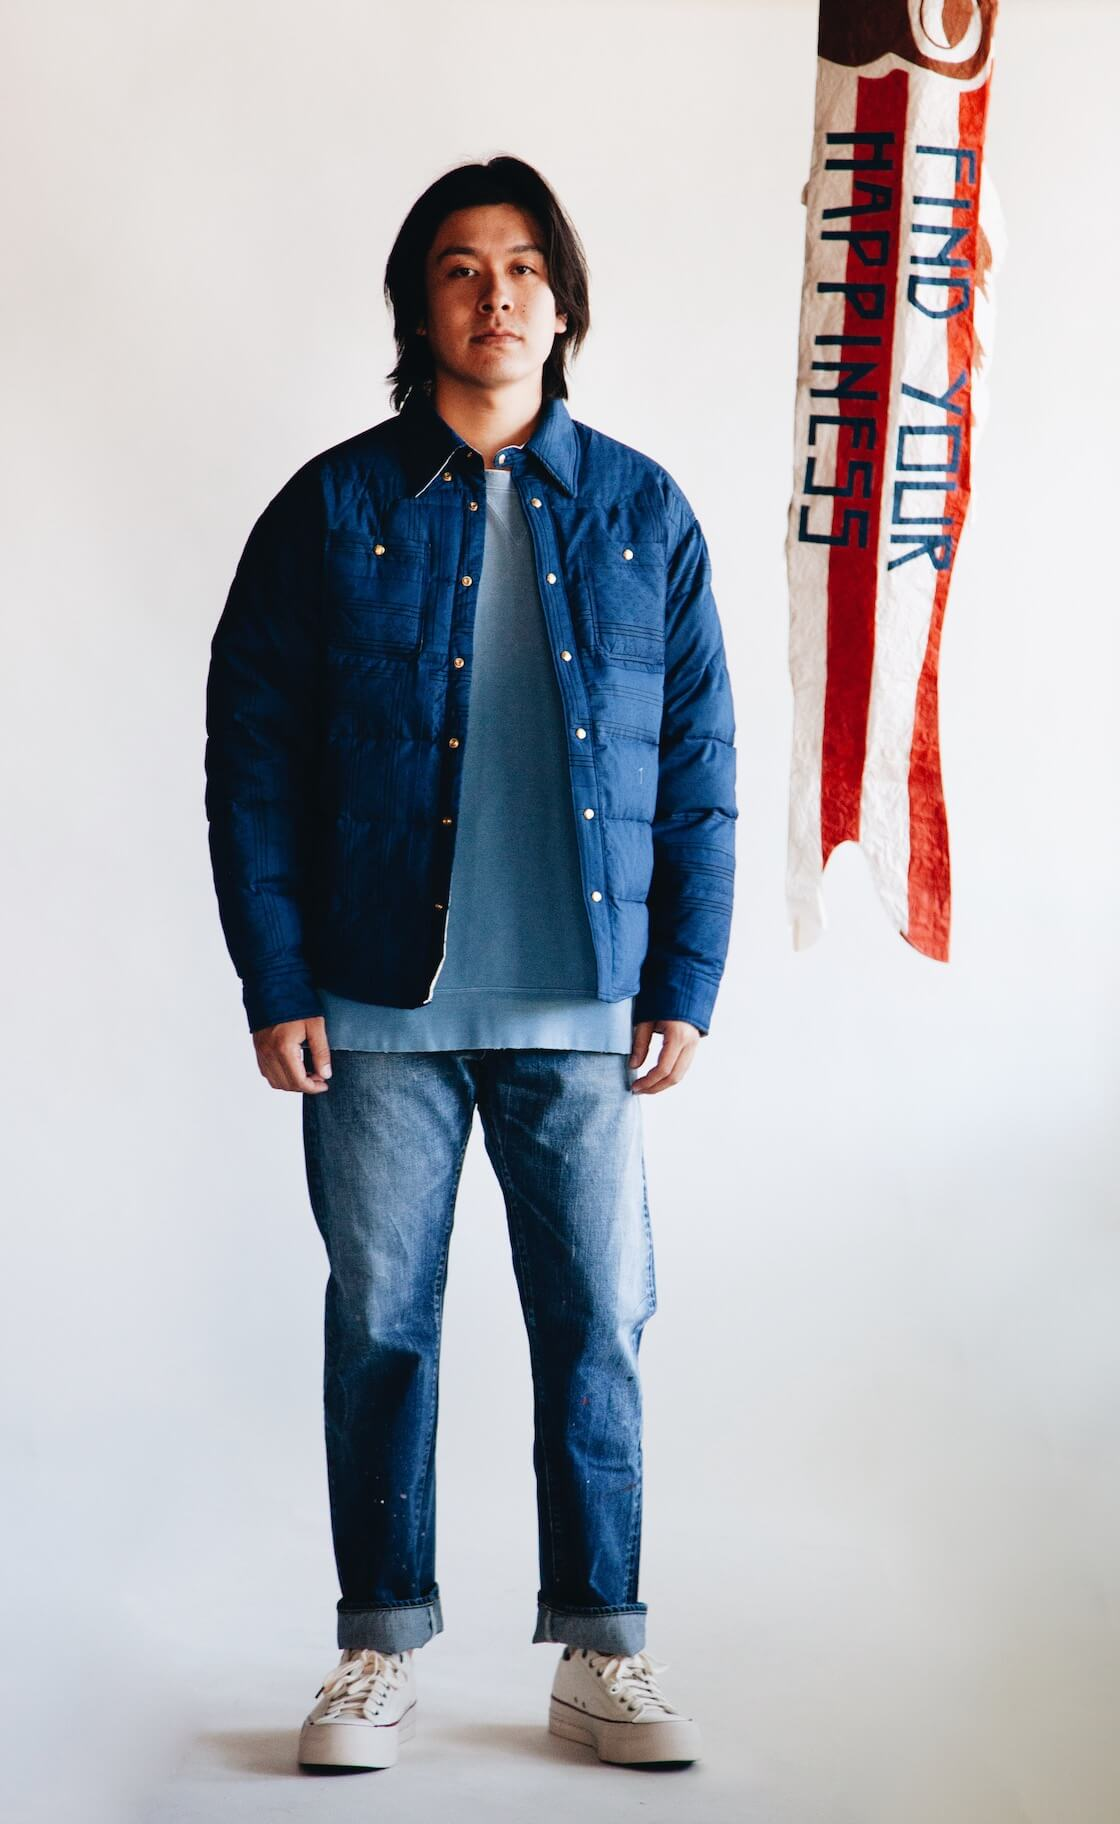 visvim indigo camping trading post find your happiness Kerchief Down Jacket, Jumbo Sweat L/S Crash Sweatshirt, Social Structure Dry Denim and Skagway Lo Canvas Shoes on body